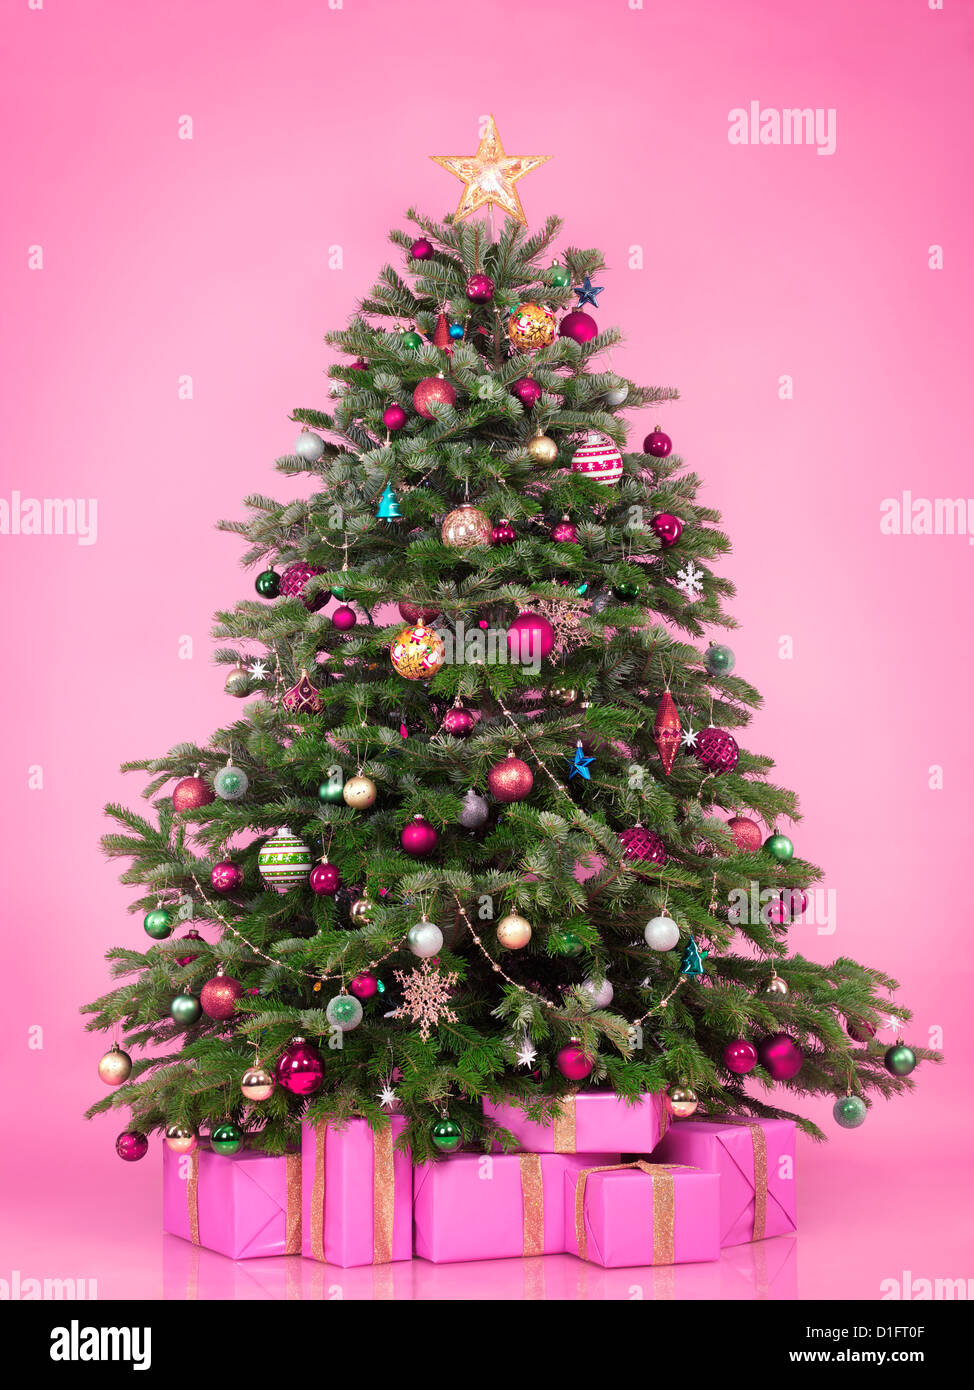 Decorated Christmas tree with presents and gift boxes isolated on pink background - Stock Image